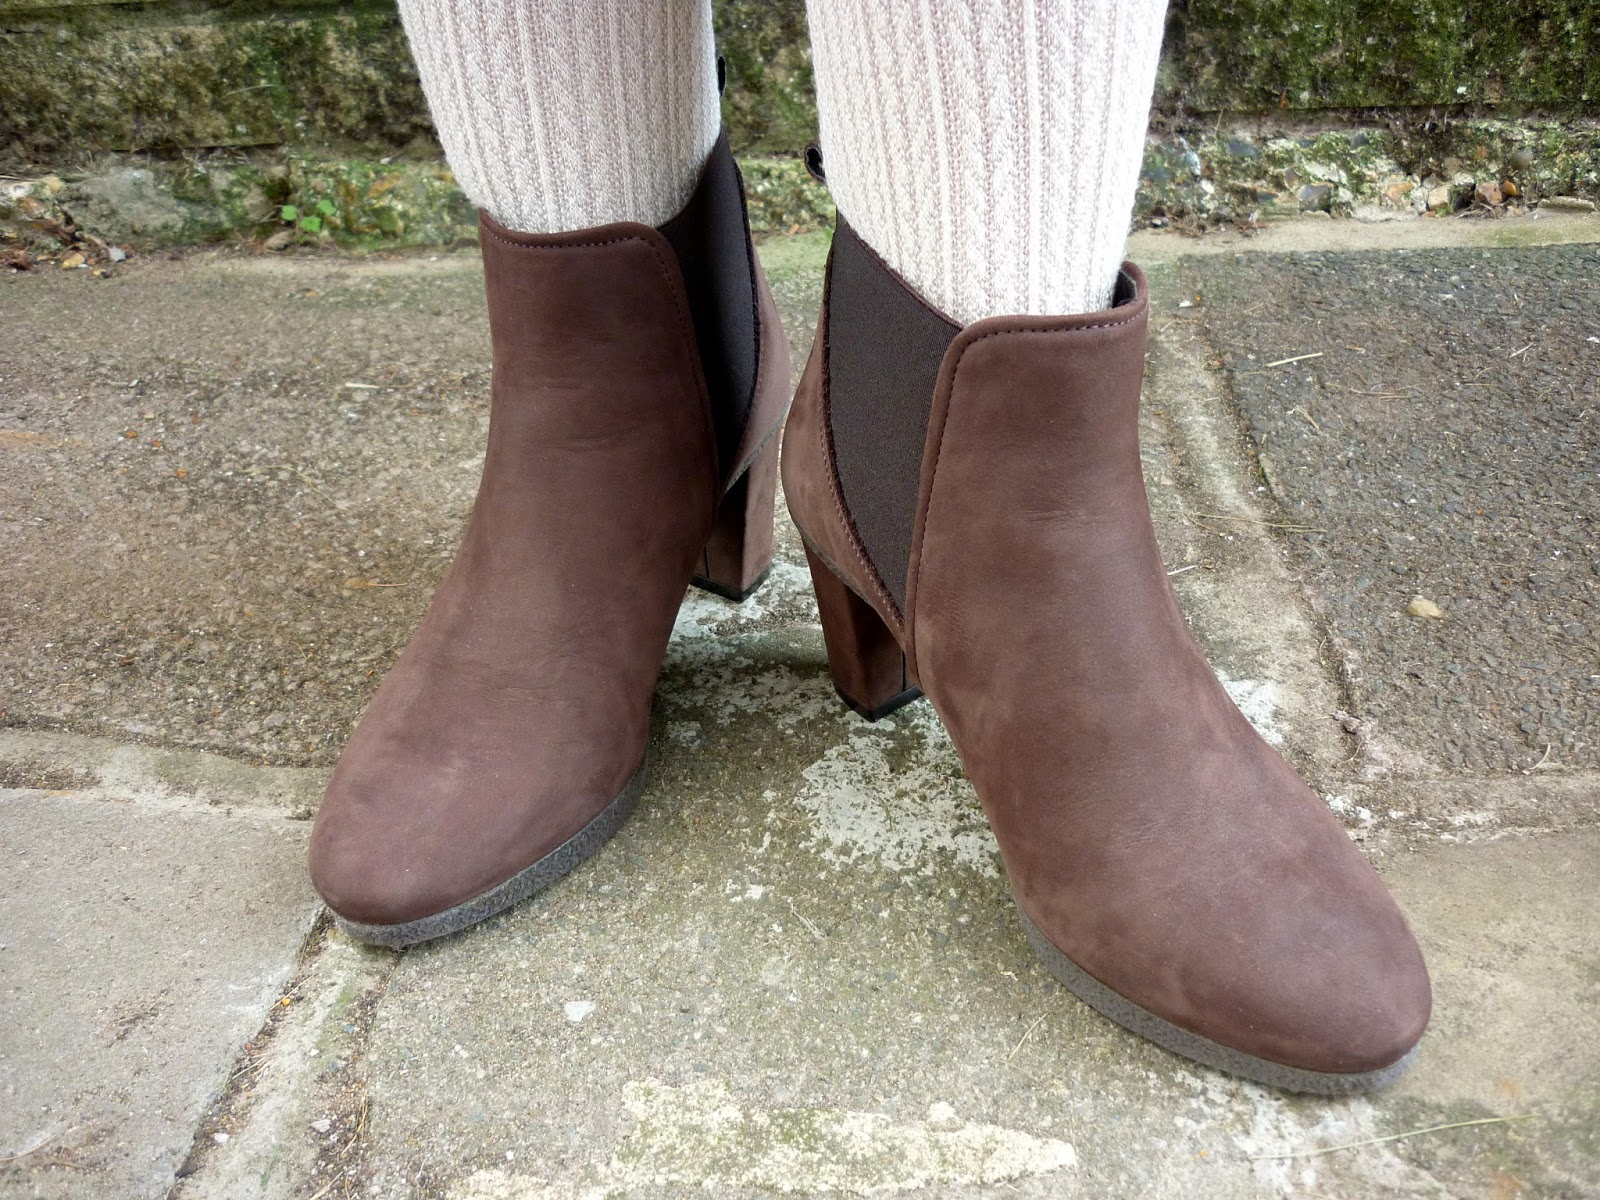 Woolly Patterned Tights. Brown Faux Suede Shoe Boots | Petite Silver Vixen